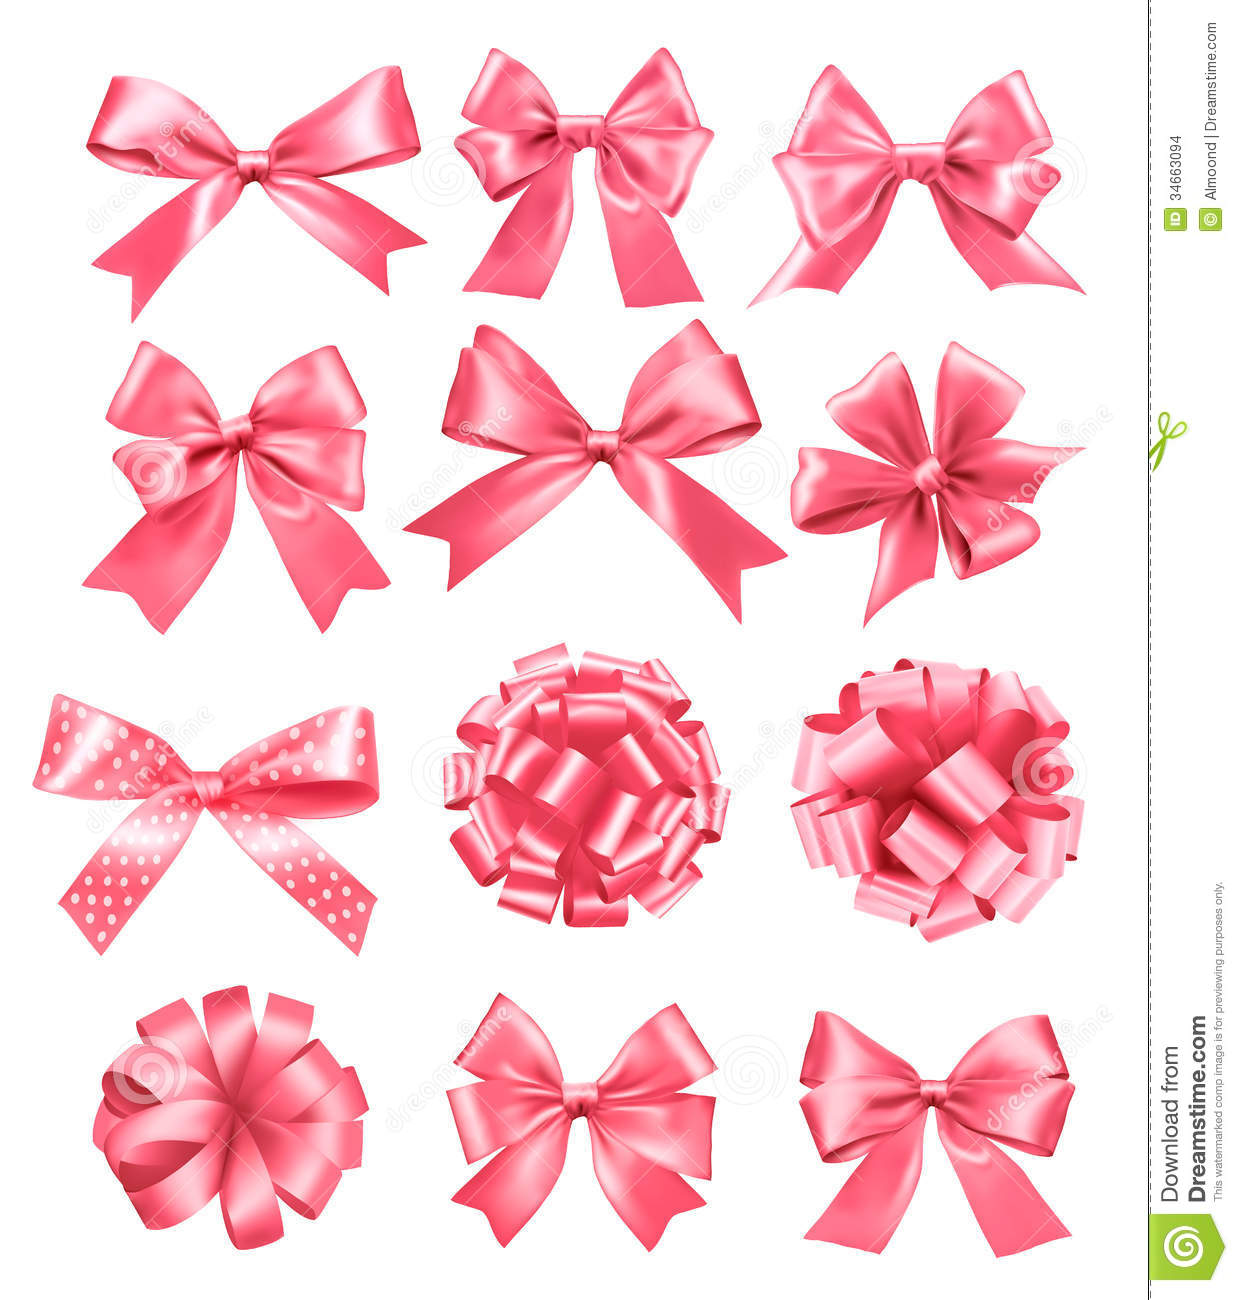 Big Set Of Pink Gift Bows And Ribbons. Stock Images - Image: 34663094